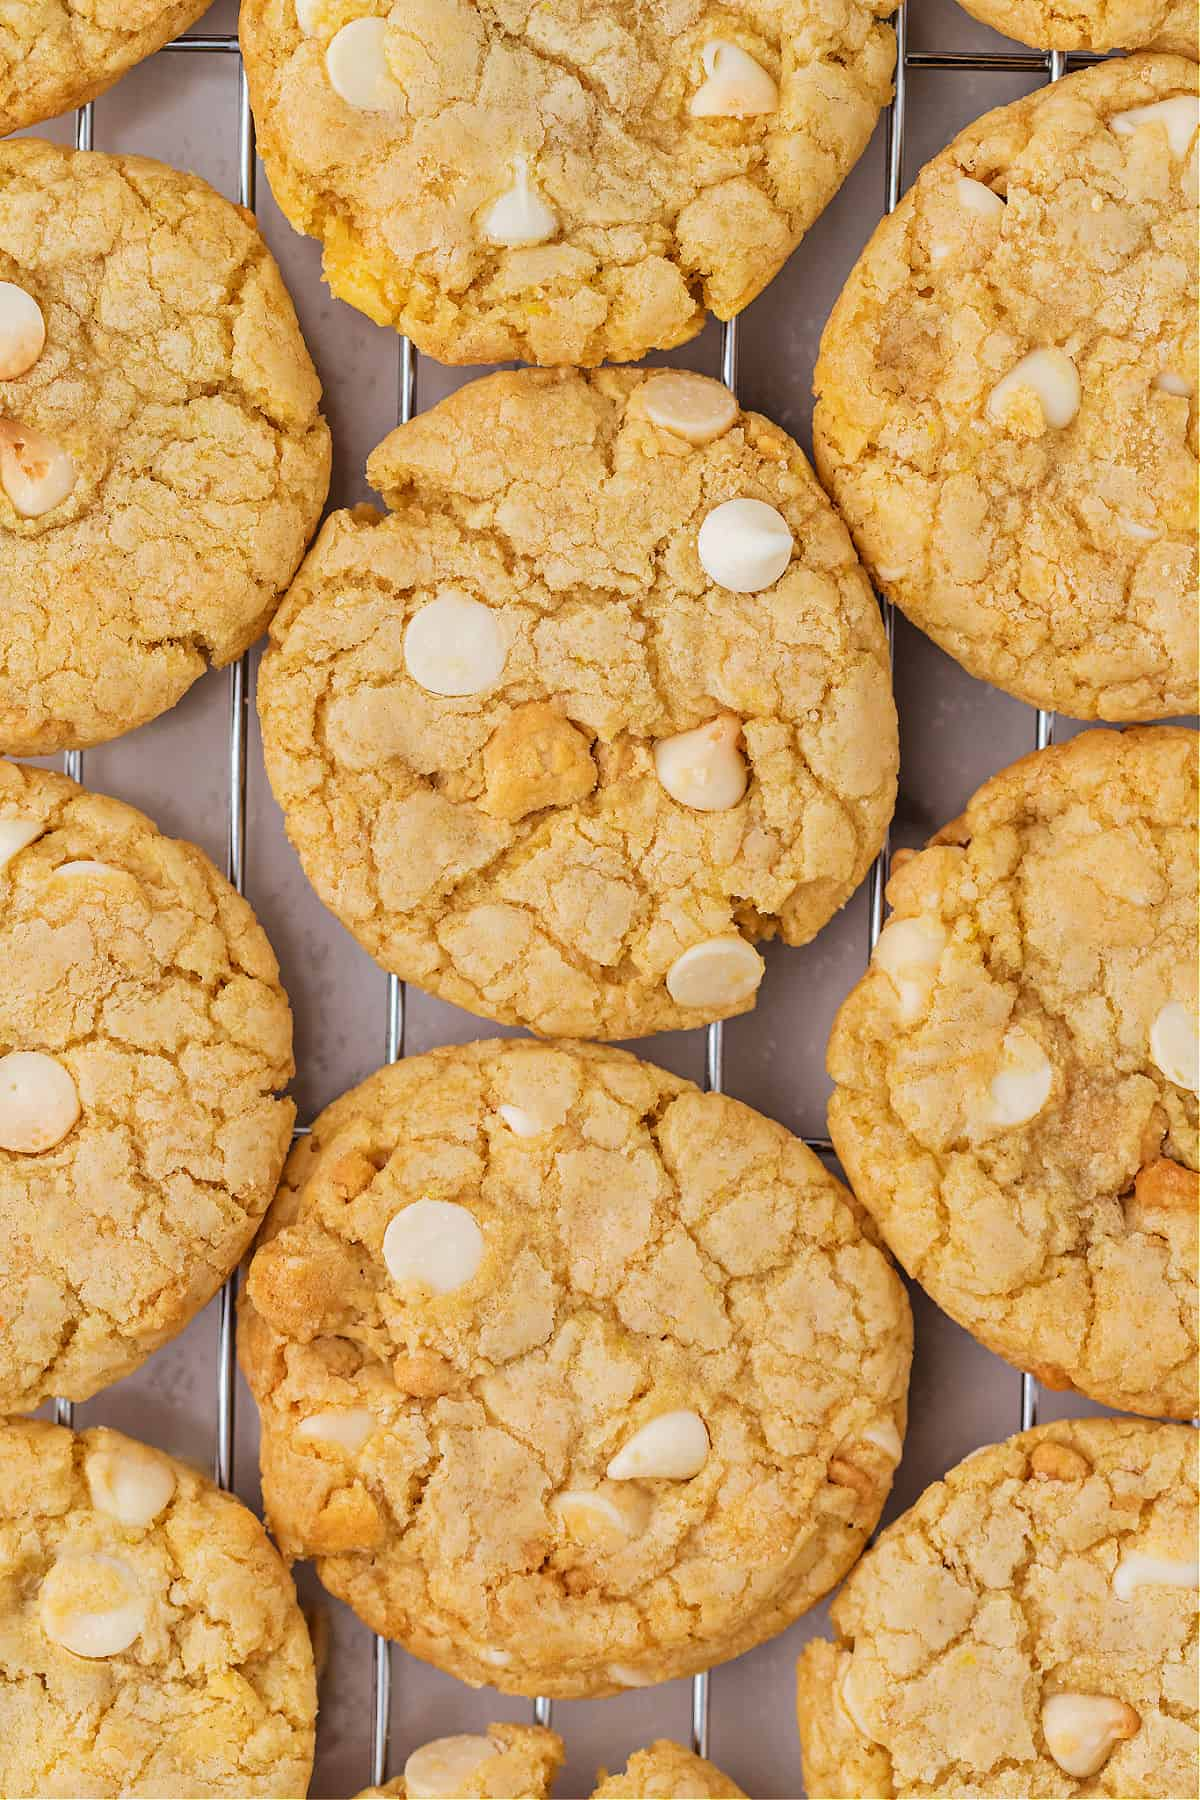 Lemon cookies with pieces of lemon oreos and white chocolate chips.